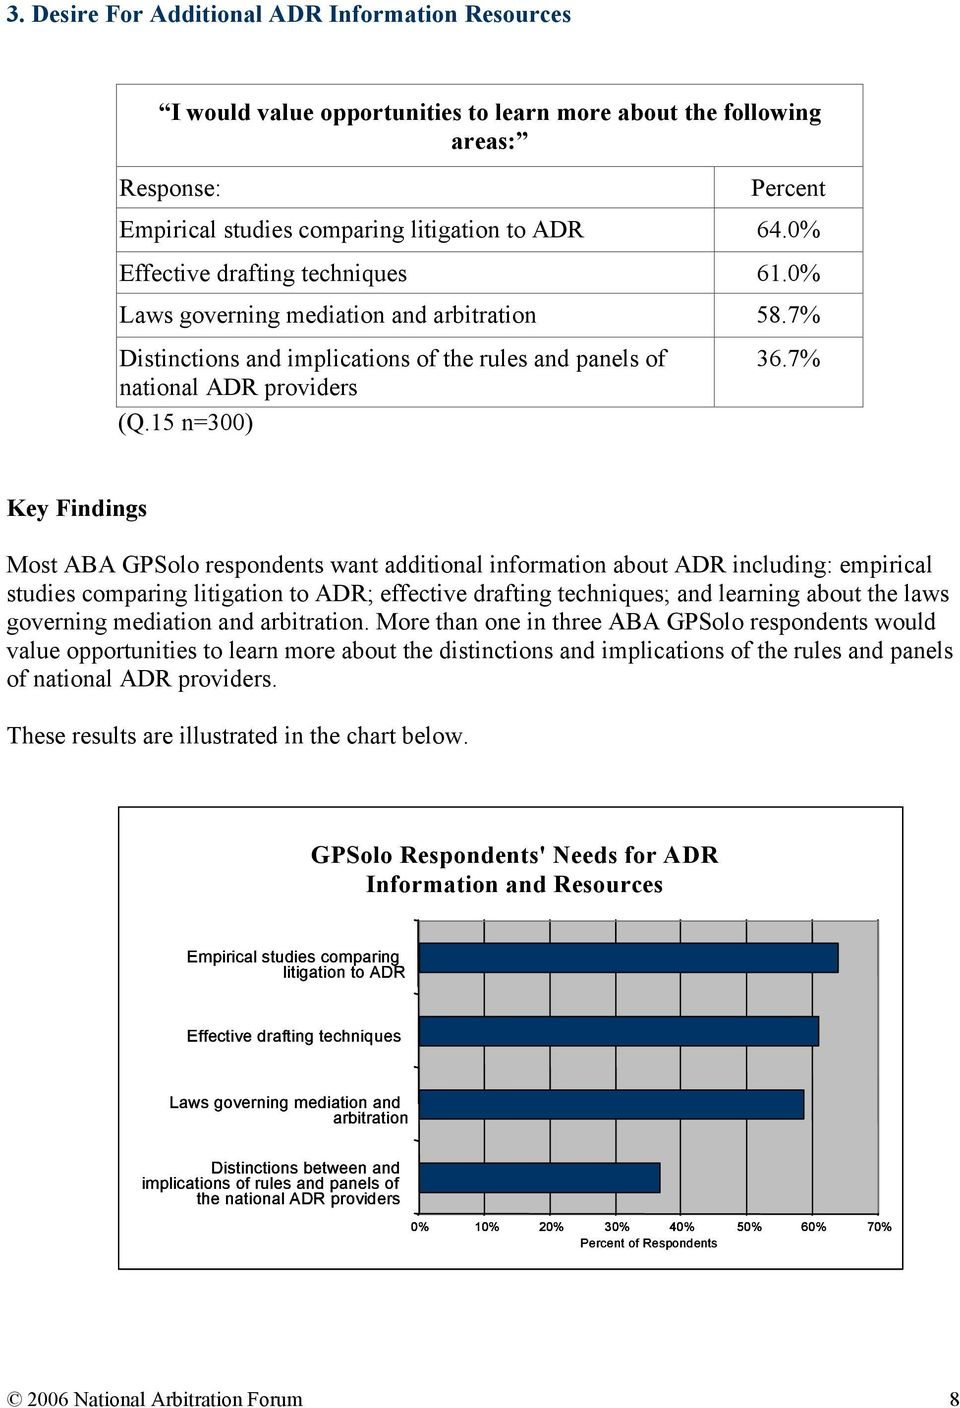 7% Key Findings Most ABA GPSolo respondents want additional information about ADR including: empirical studies comparing litigation to ADR; effective drafting techniques; and learning about the laws